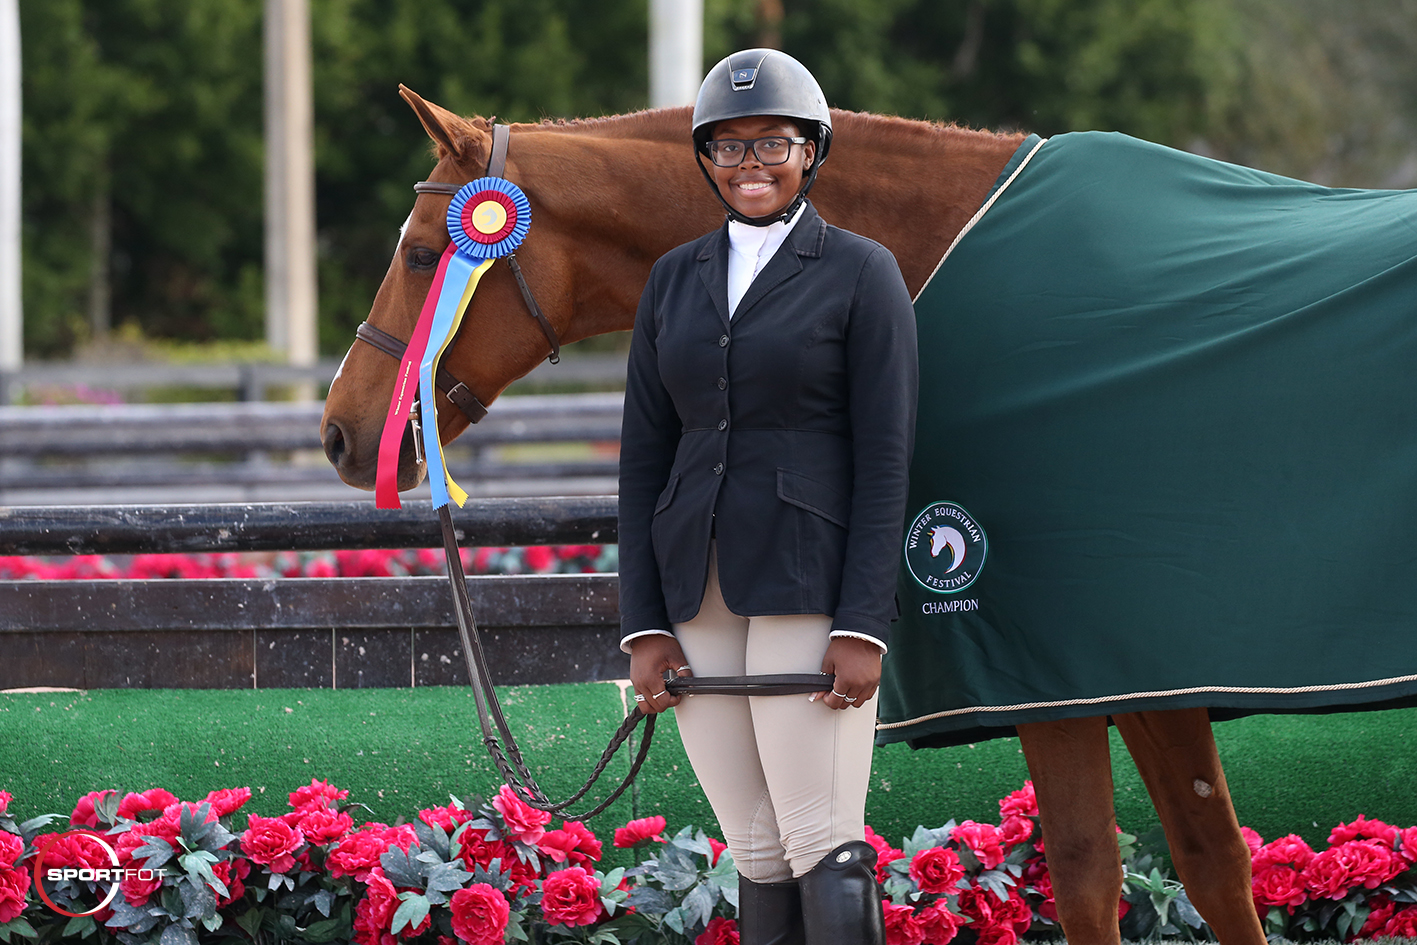 Jordan Allen and High Society pres 304_1076 Sportfot